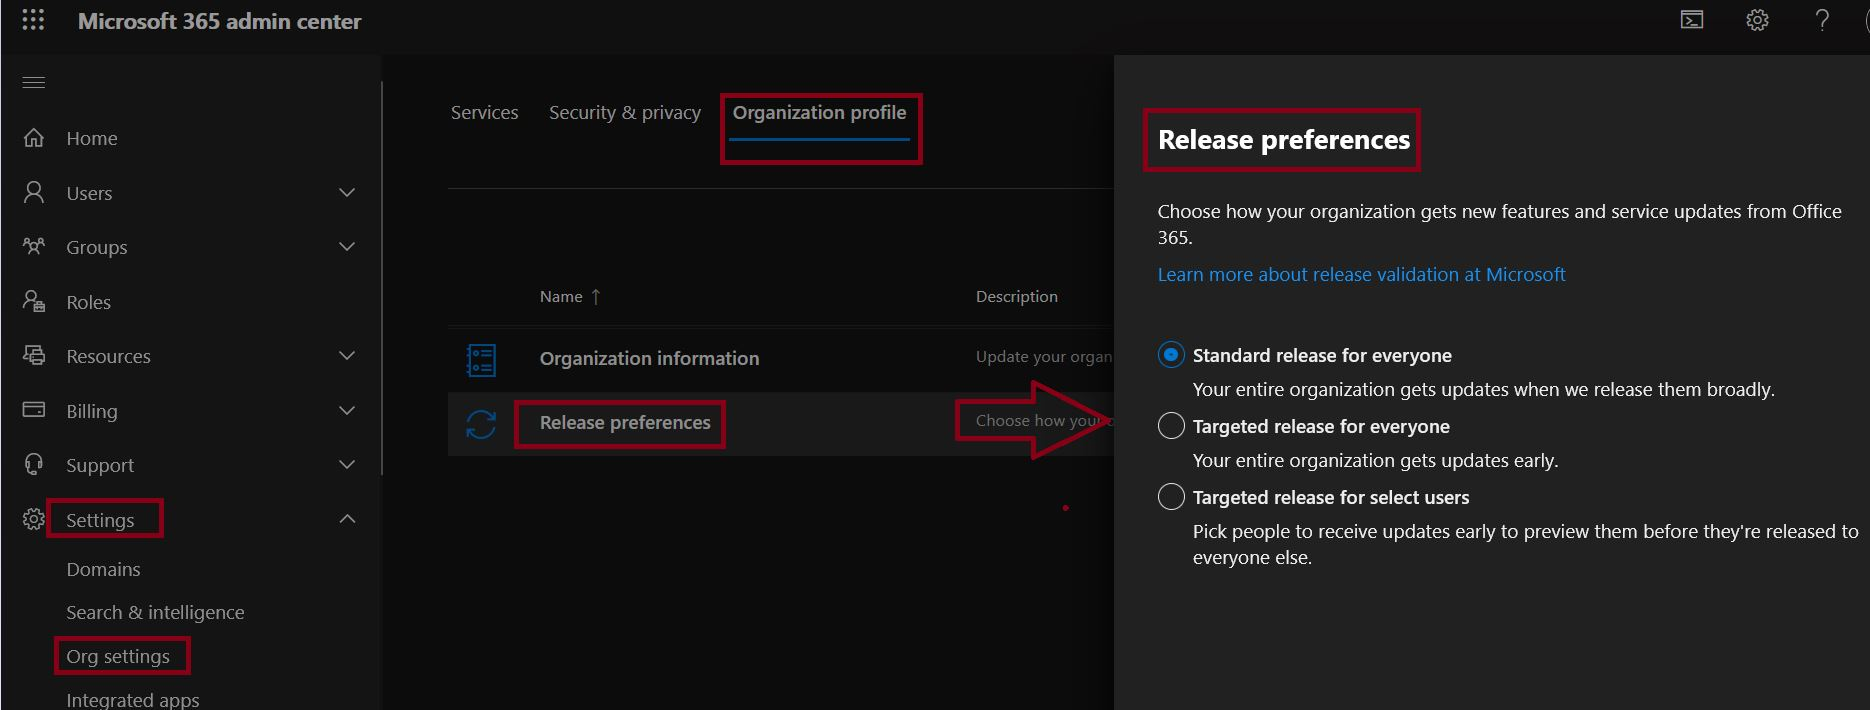 Release Preferences settings in Microsoft 365